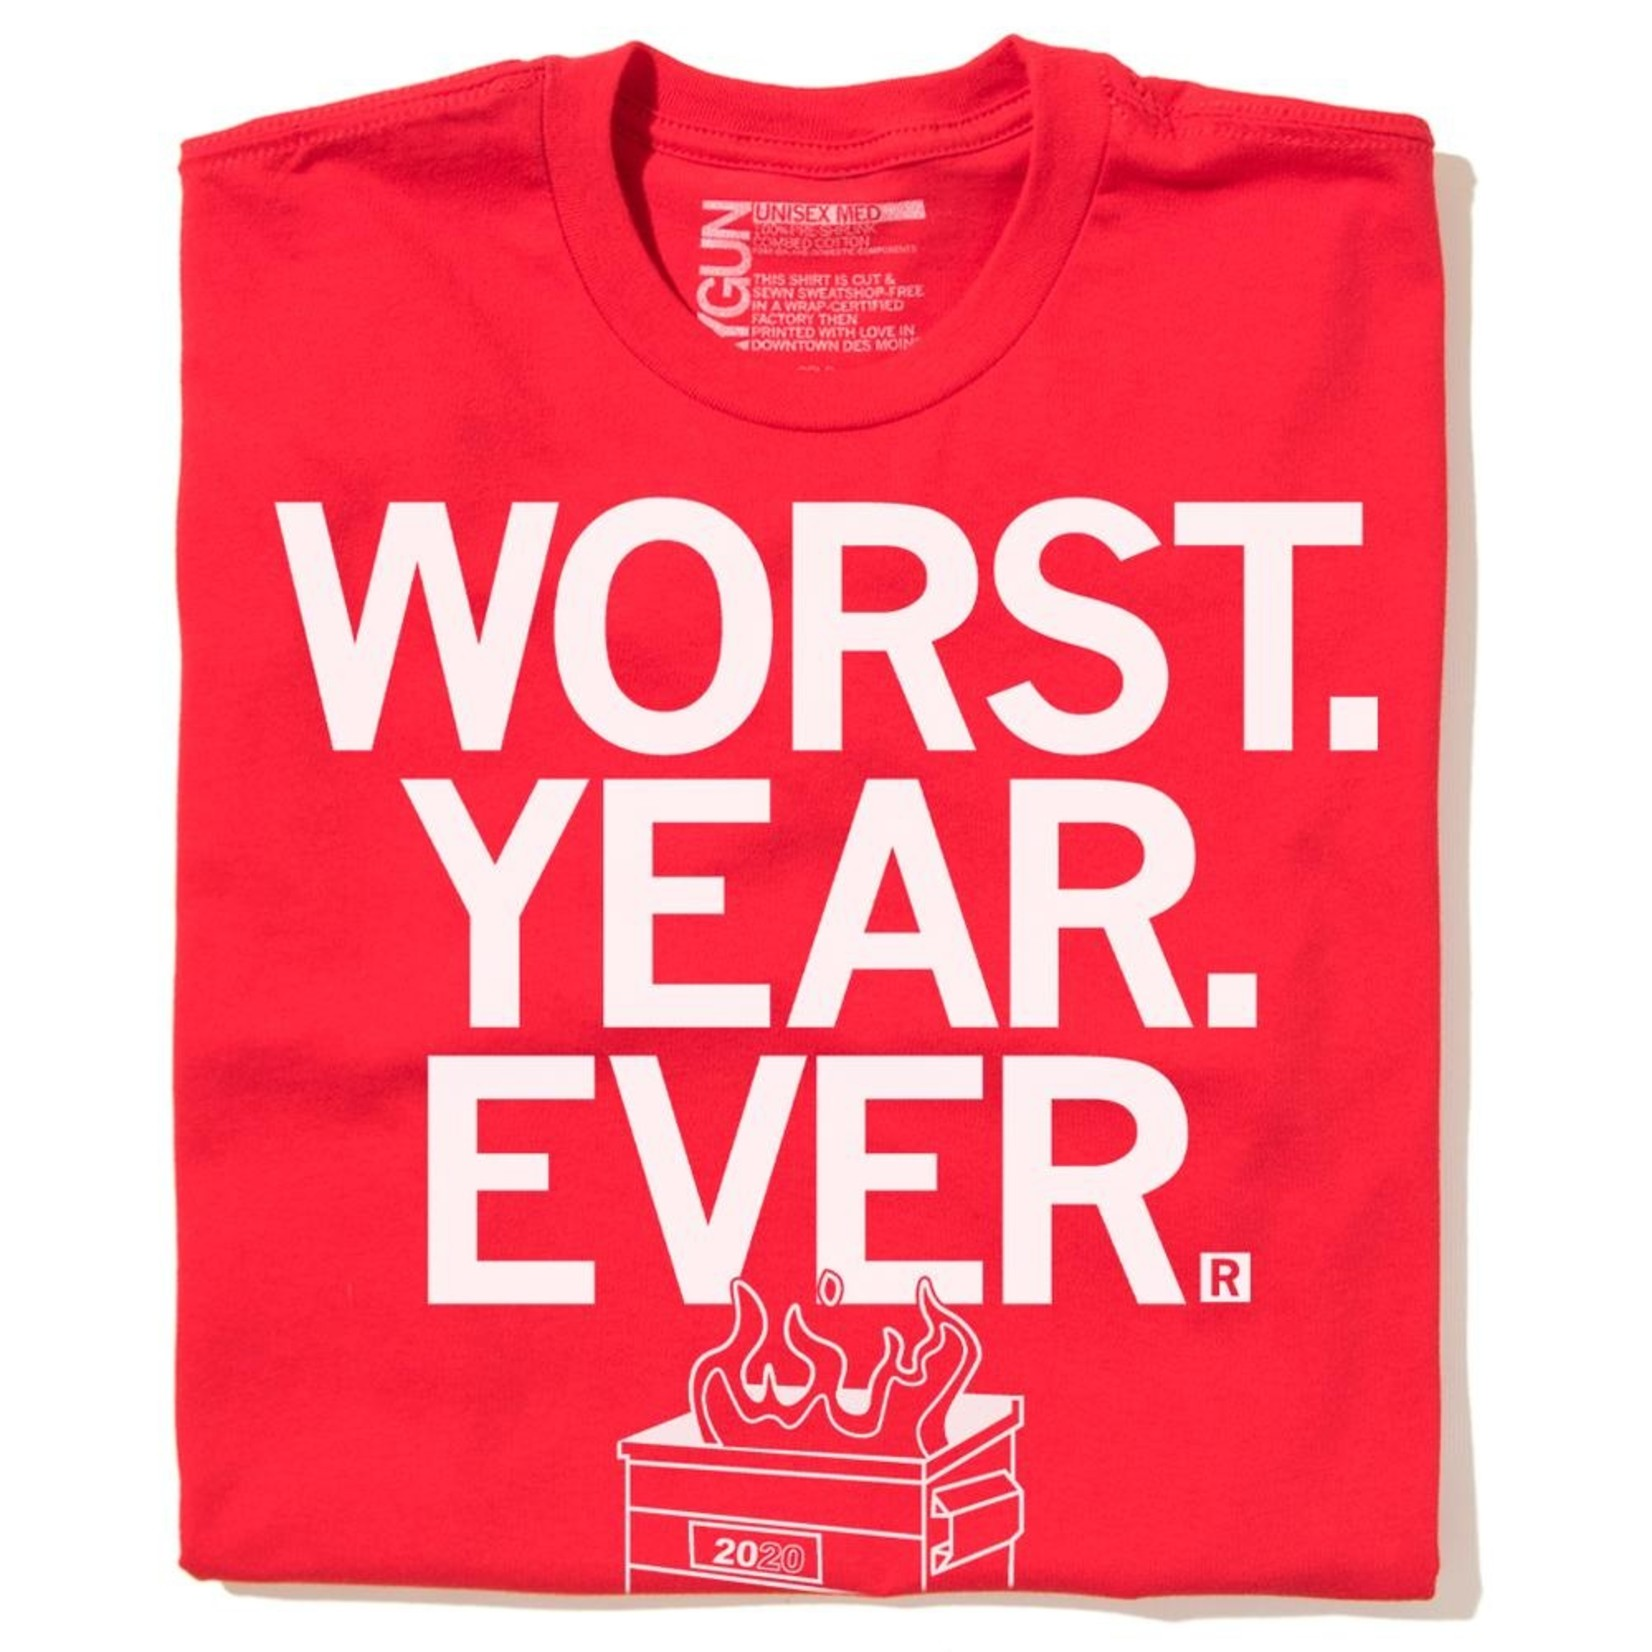 Worst Year Ever 2020 Dumpster Fire Unisex Tee Red